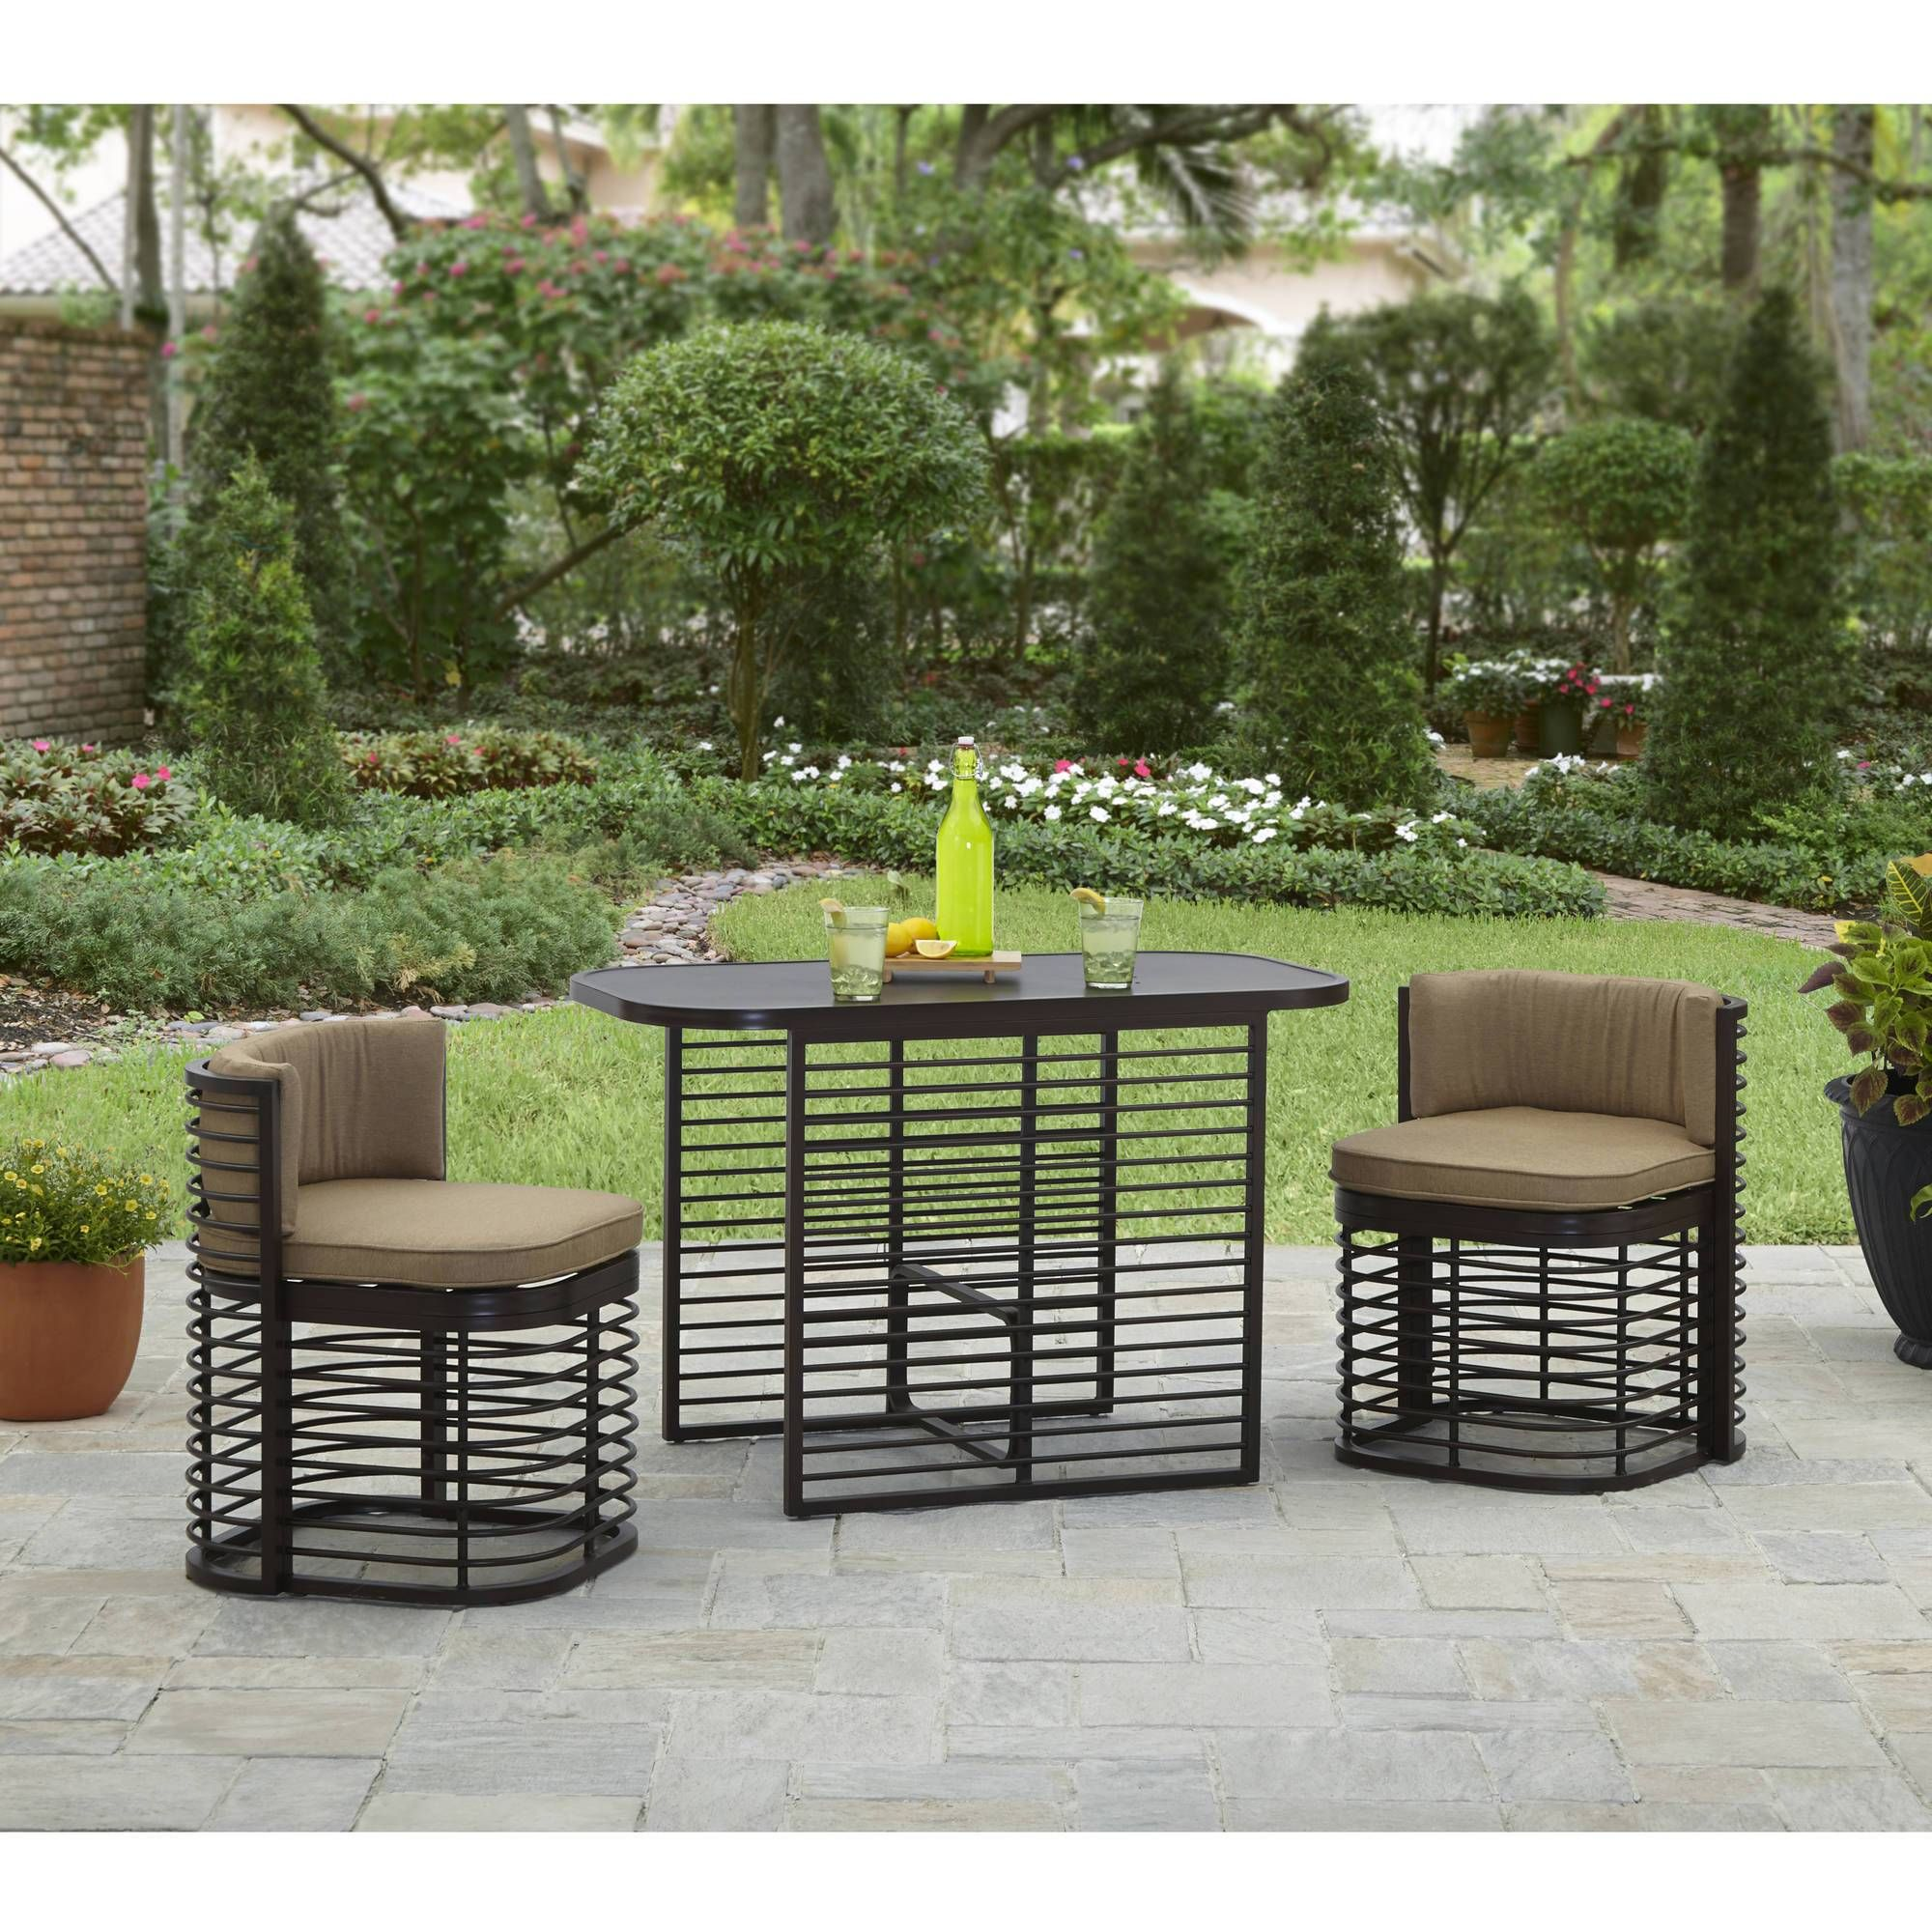 Better homes and gardens murray hill 3 piece small space aluminum set